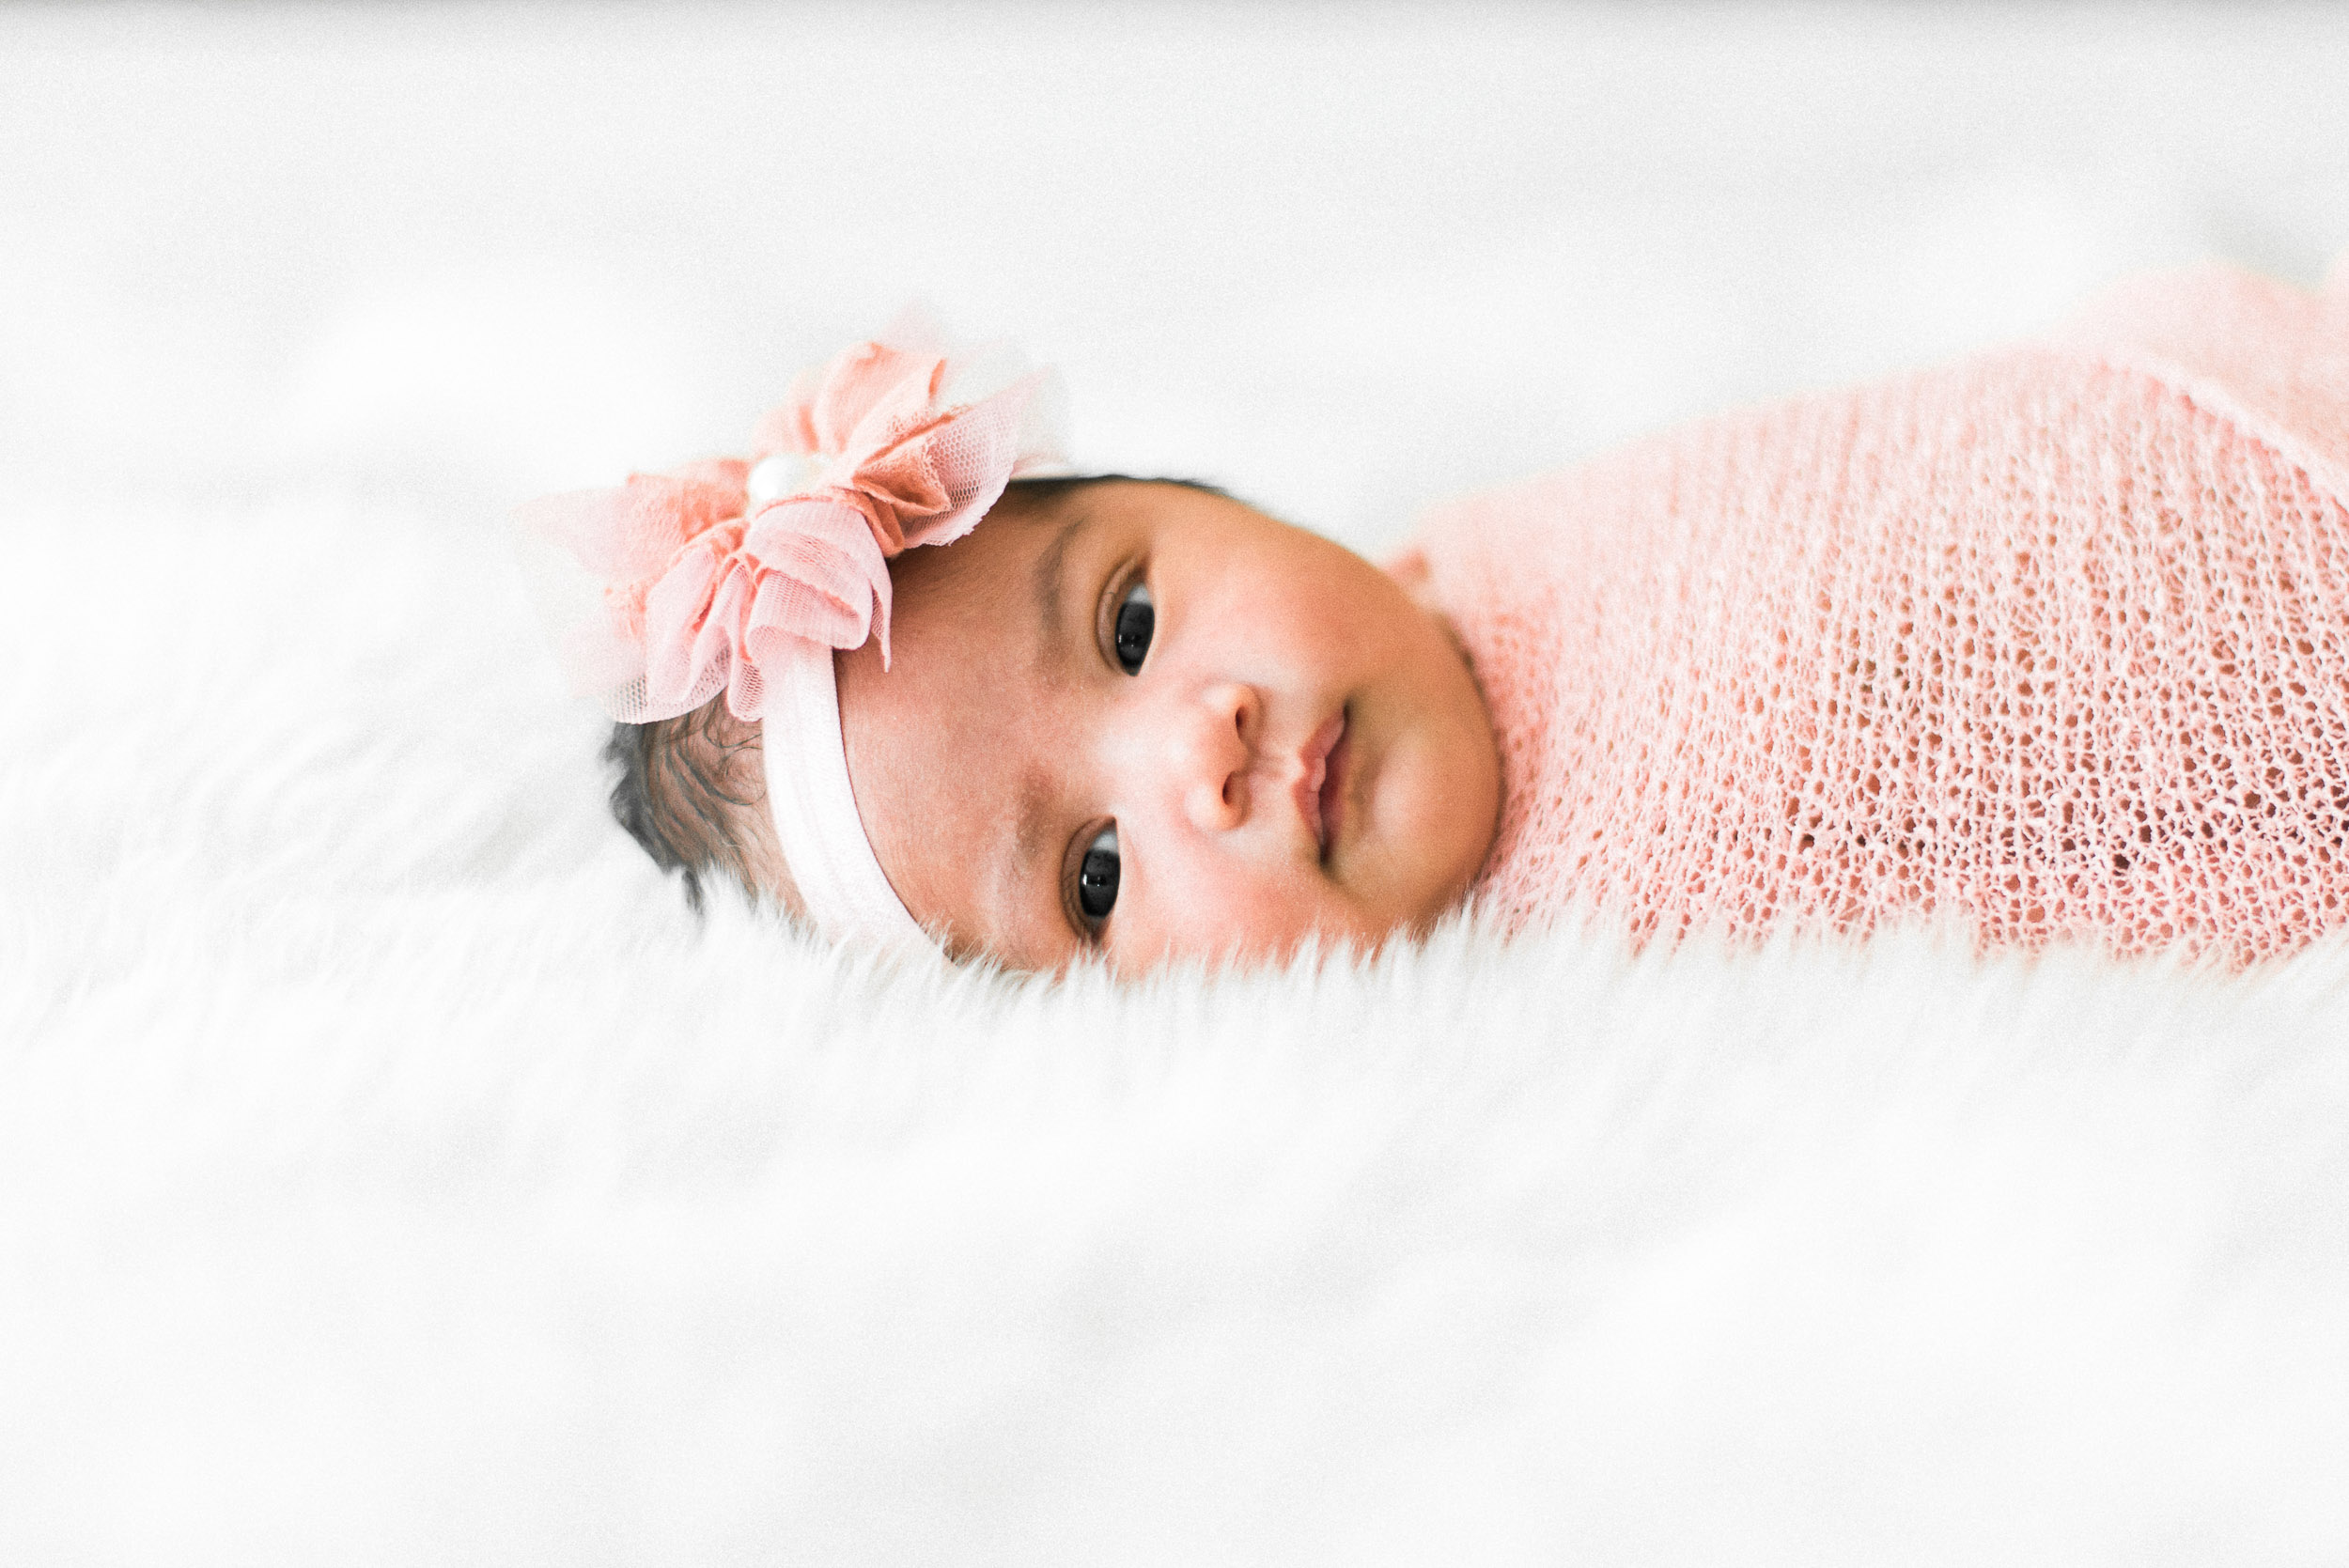 Miraflor-Photo-Madeleine-Newborn-Photoshoot-20171210-021.jpg